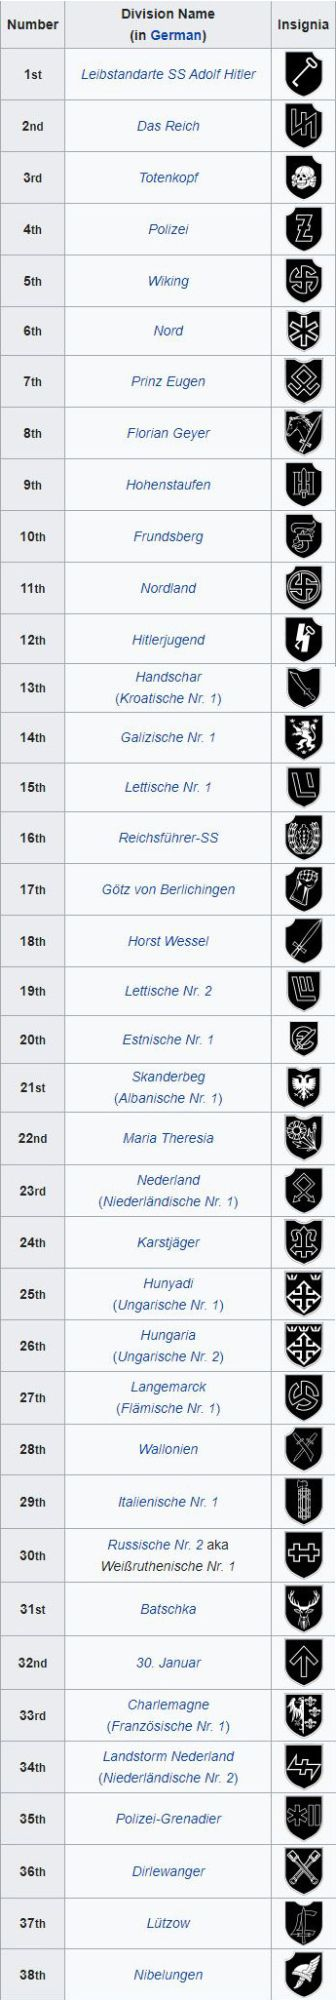 List of SS Divisions